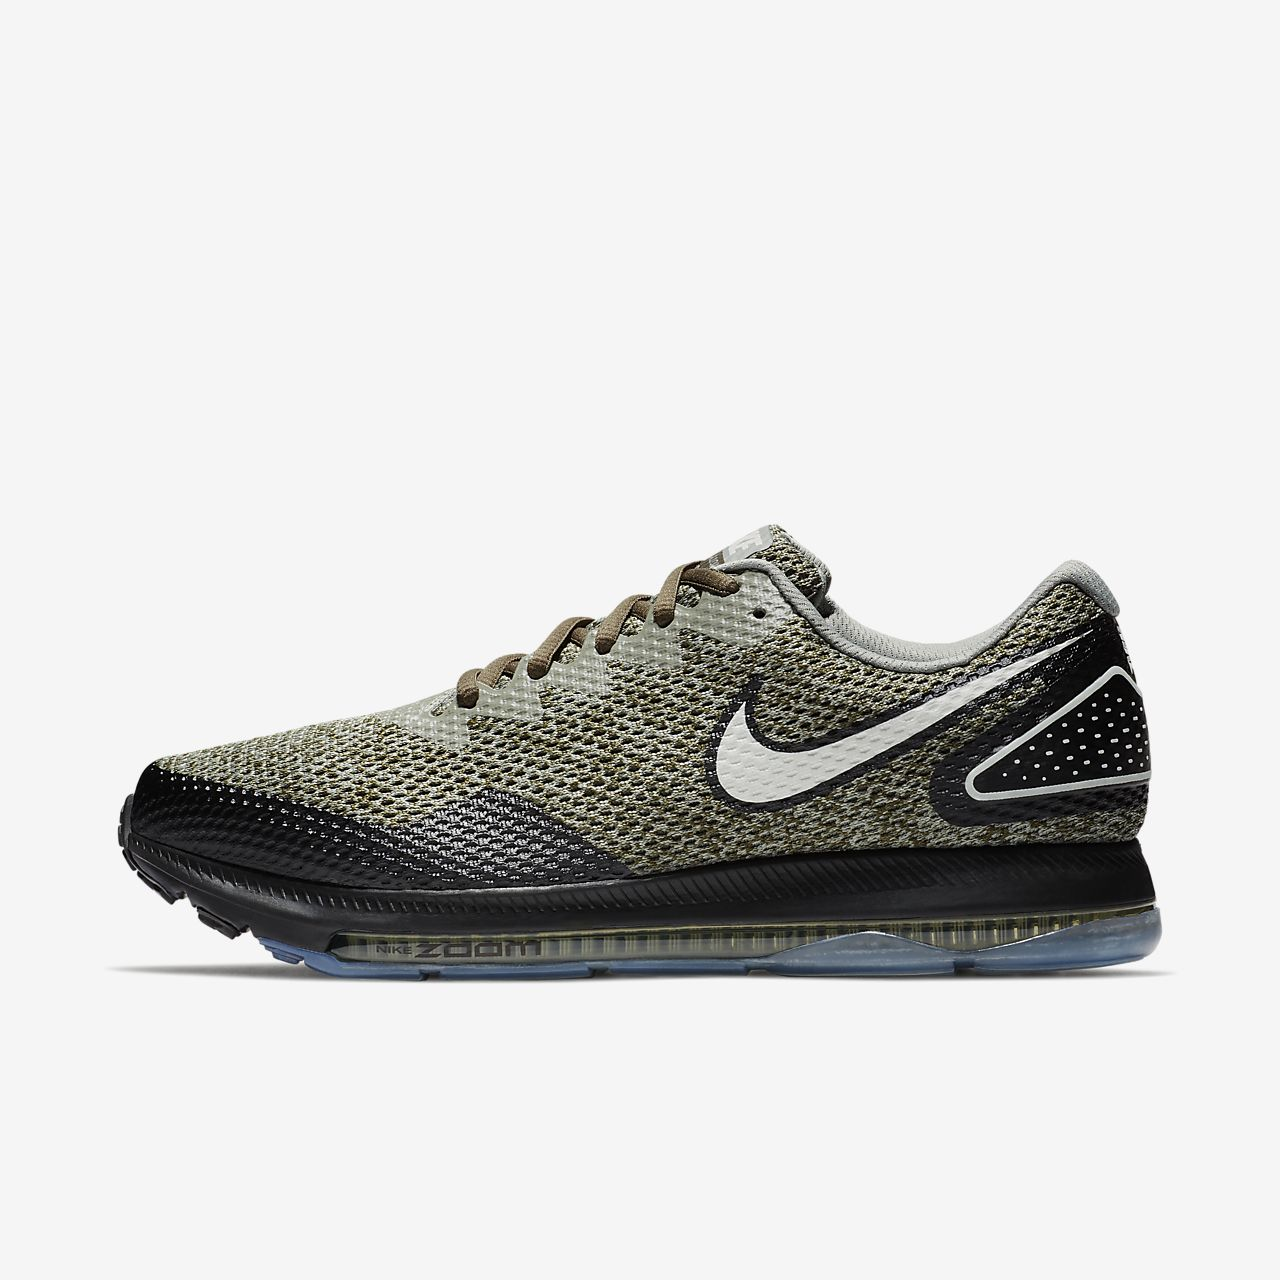 Nike Zoom All Out Low 2 Green Olive Más Barato F7vFzfA4w